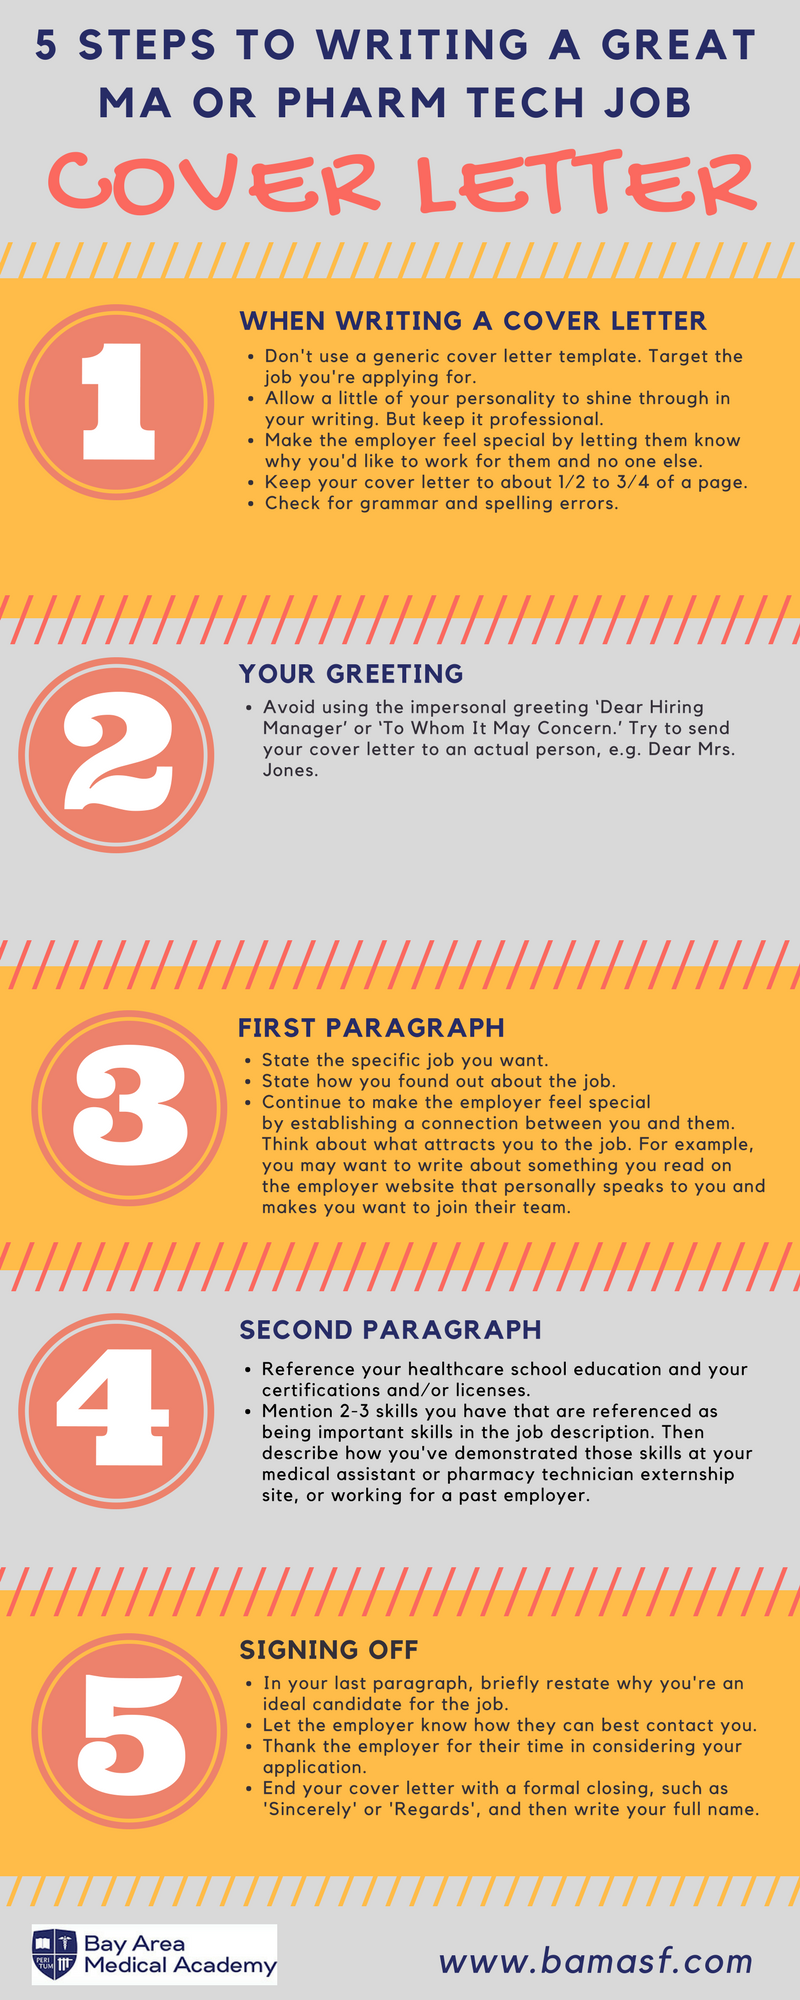 Infographic 5 Steps To Writing A Great Medical Assistant Or